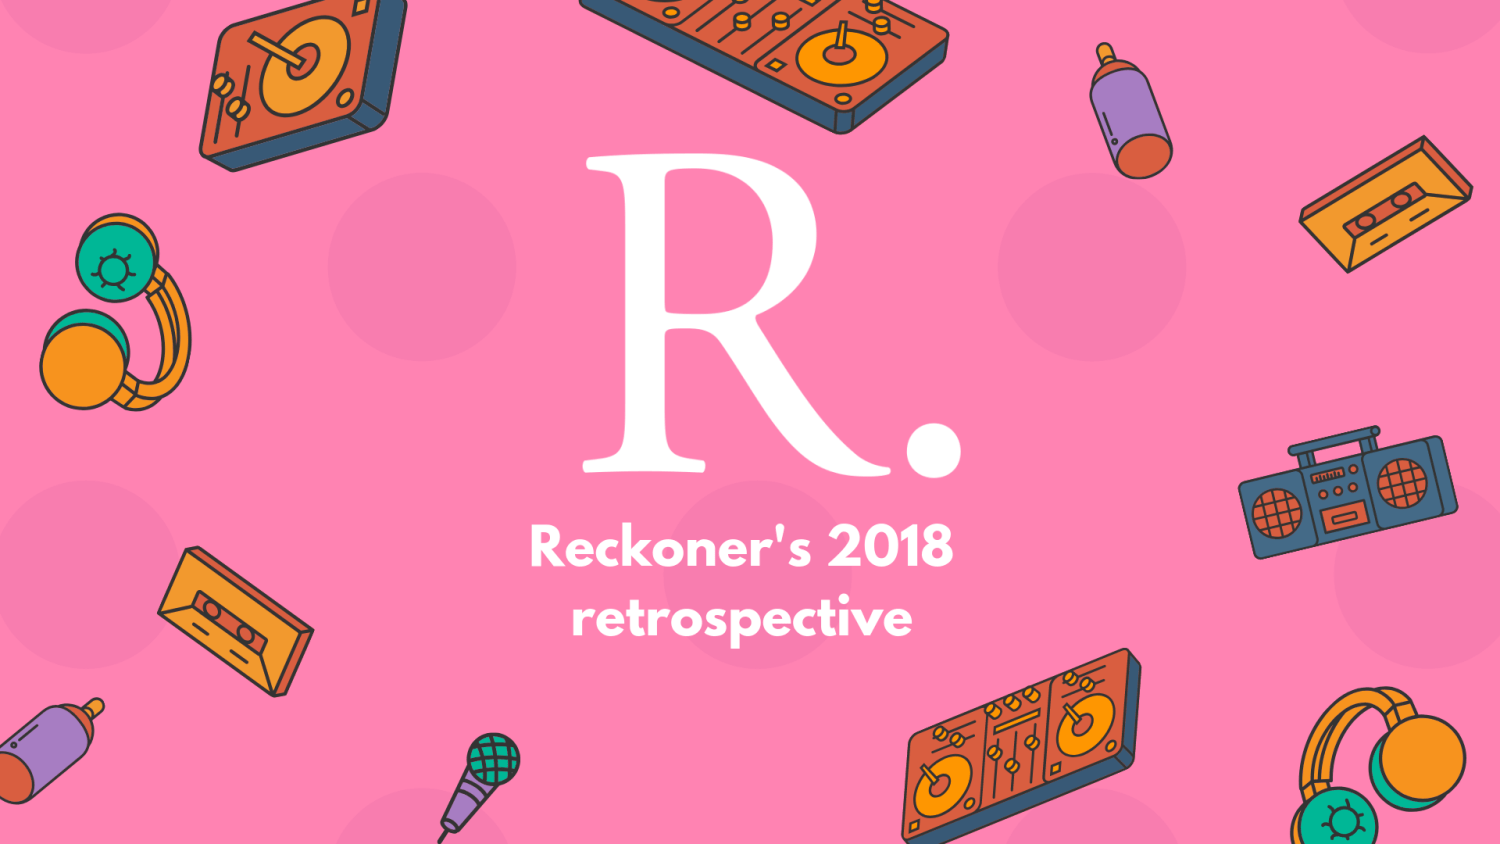 Wiring Up A New House With Ethernet Walk Through Reckoner Two Story Reckoners 2018 Retrospective